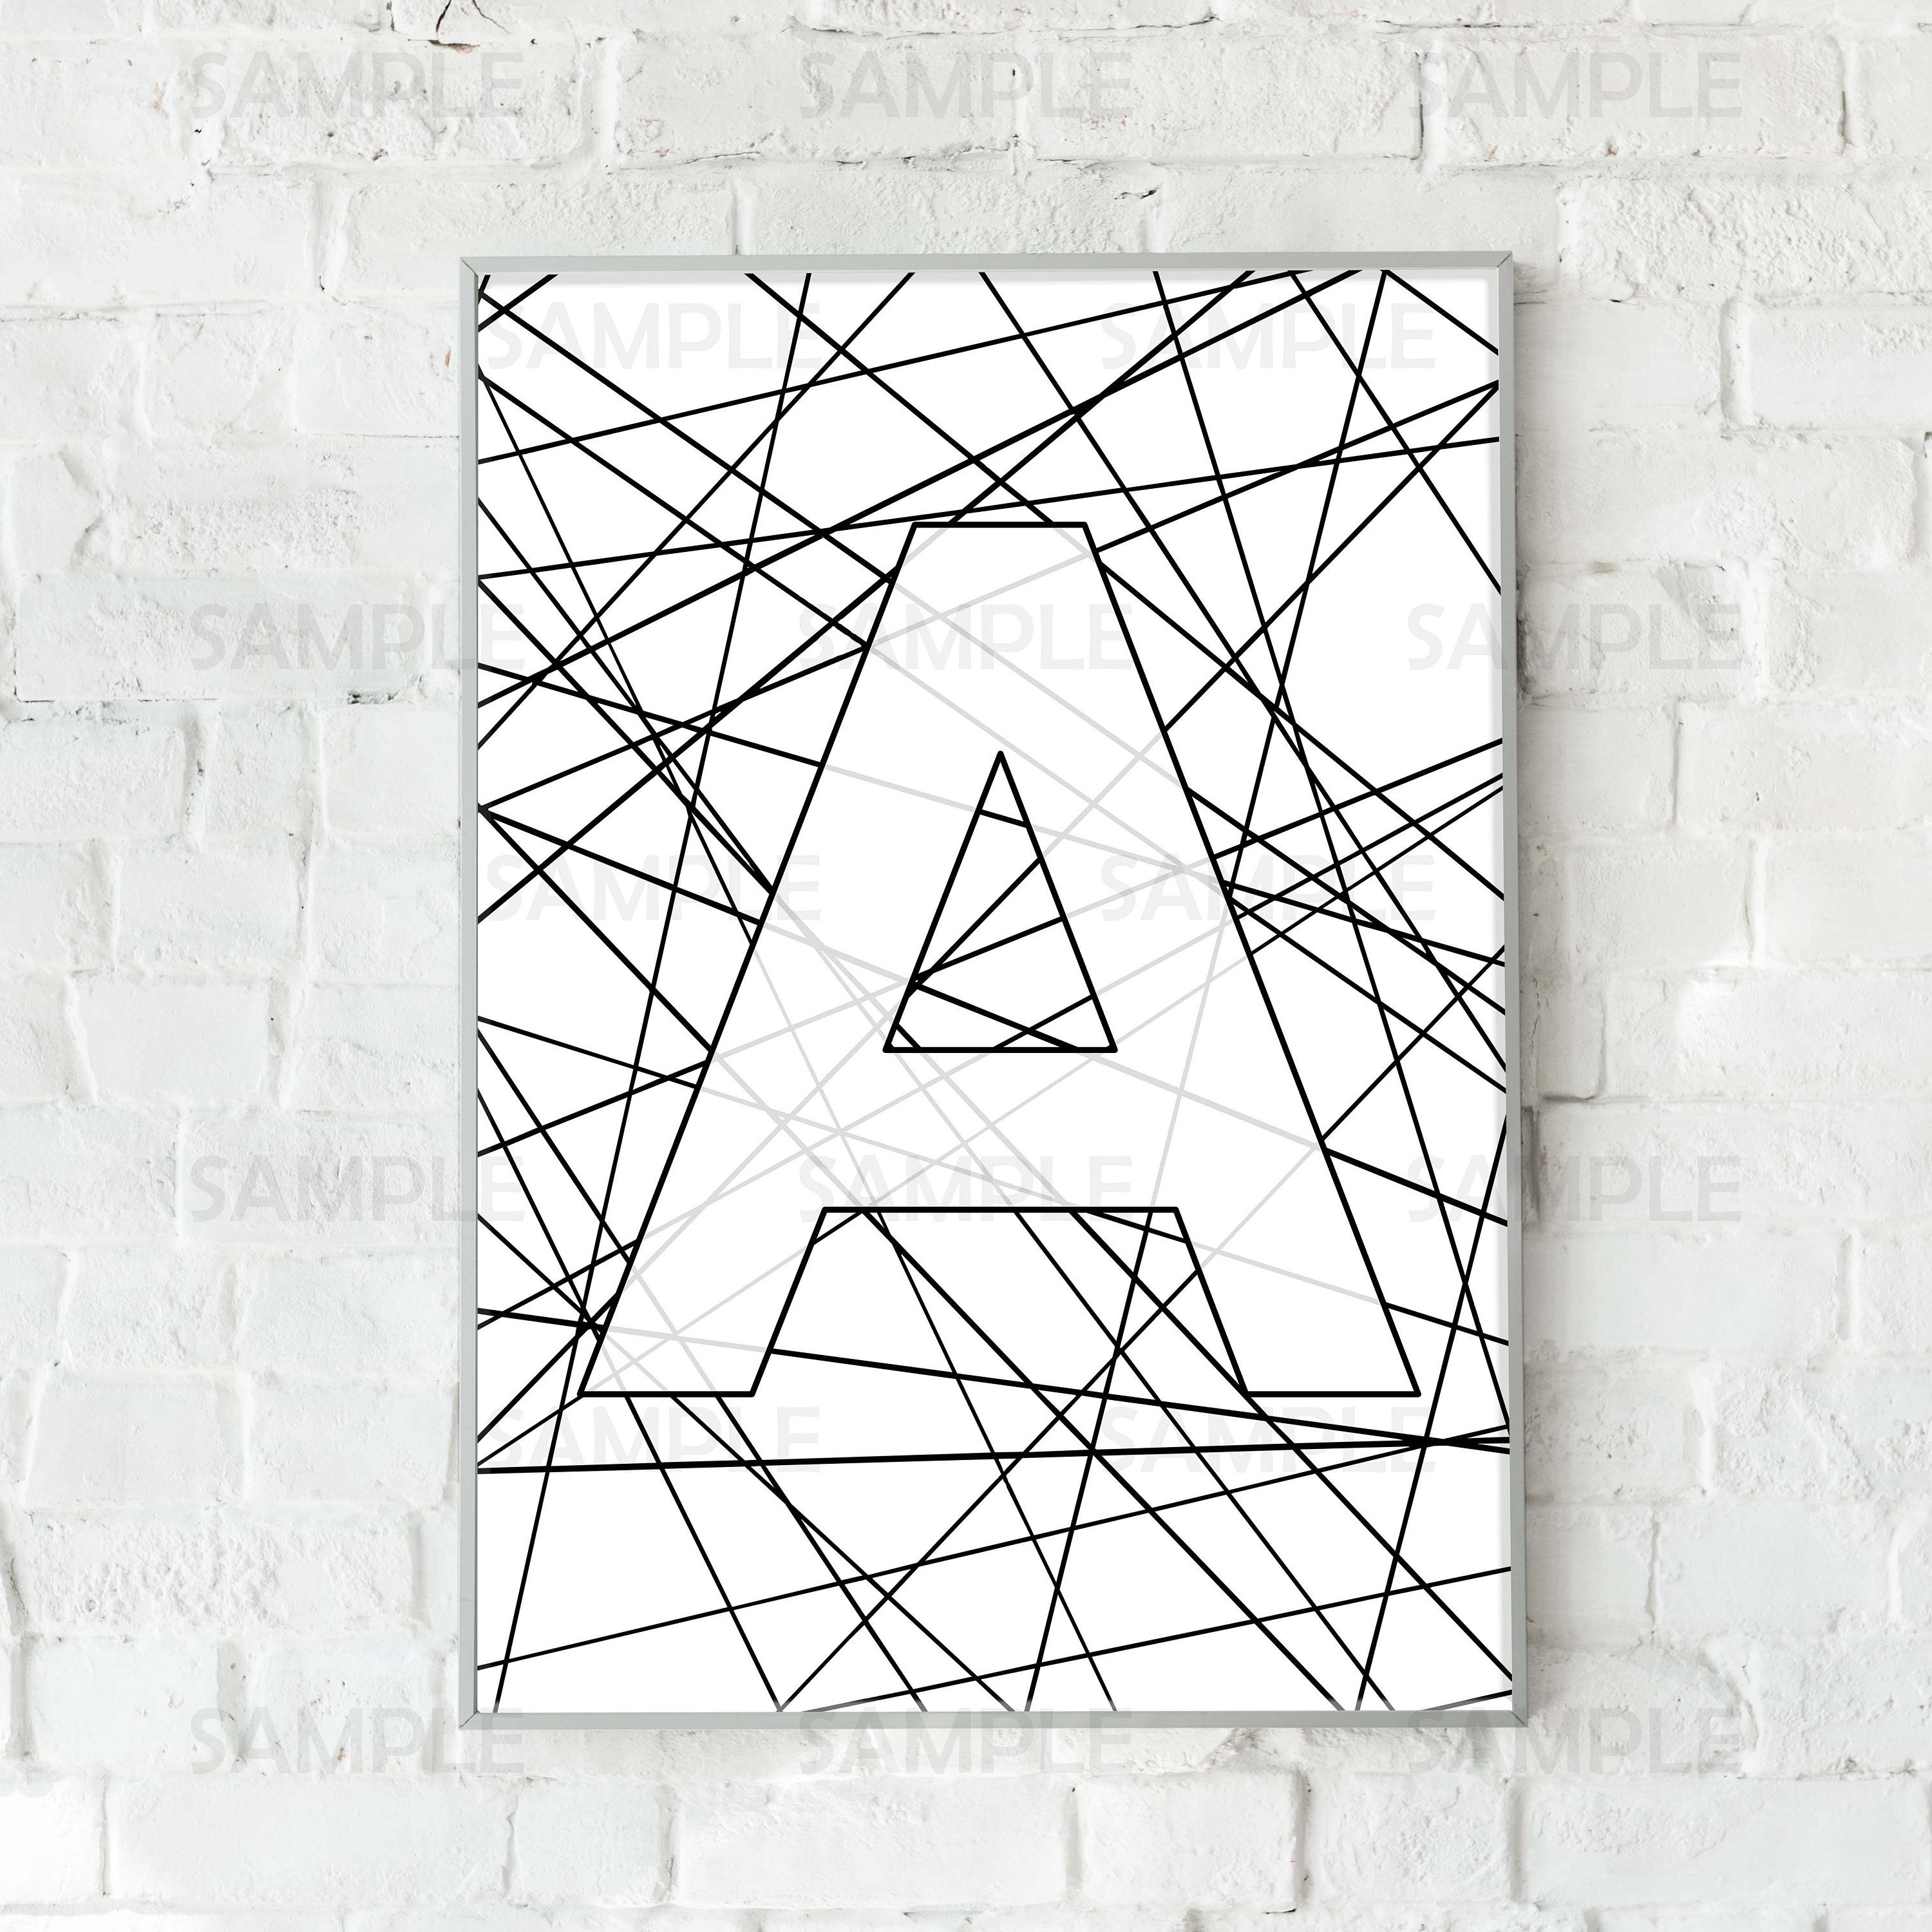 Personalized Initial Letter A Wall Art Black White Print Printable Decor Personalized Gift Initial Wall Art Personalised Gifts Diy Gallery Wall Decor